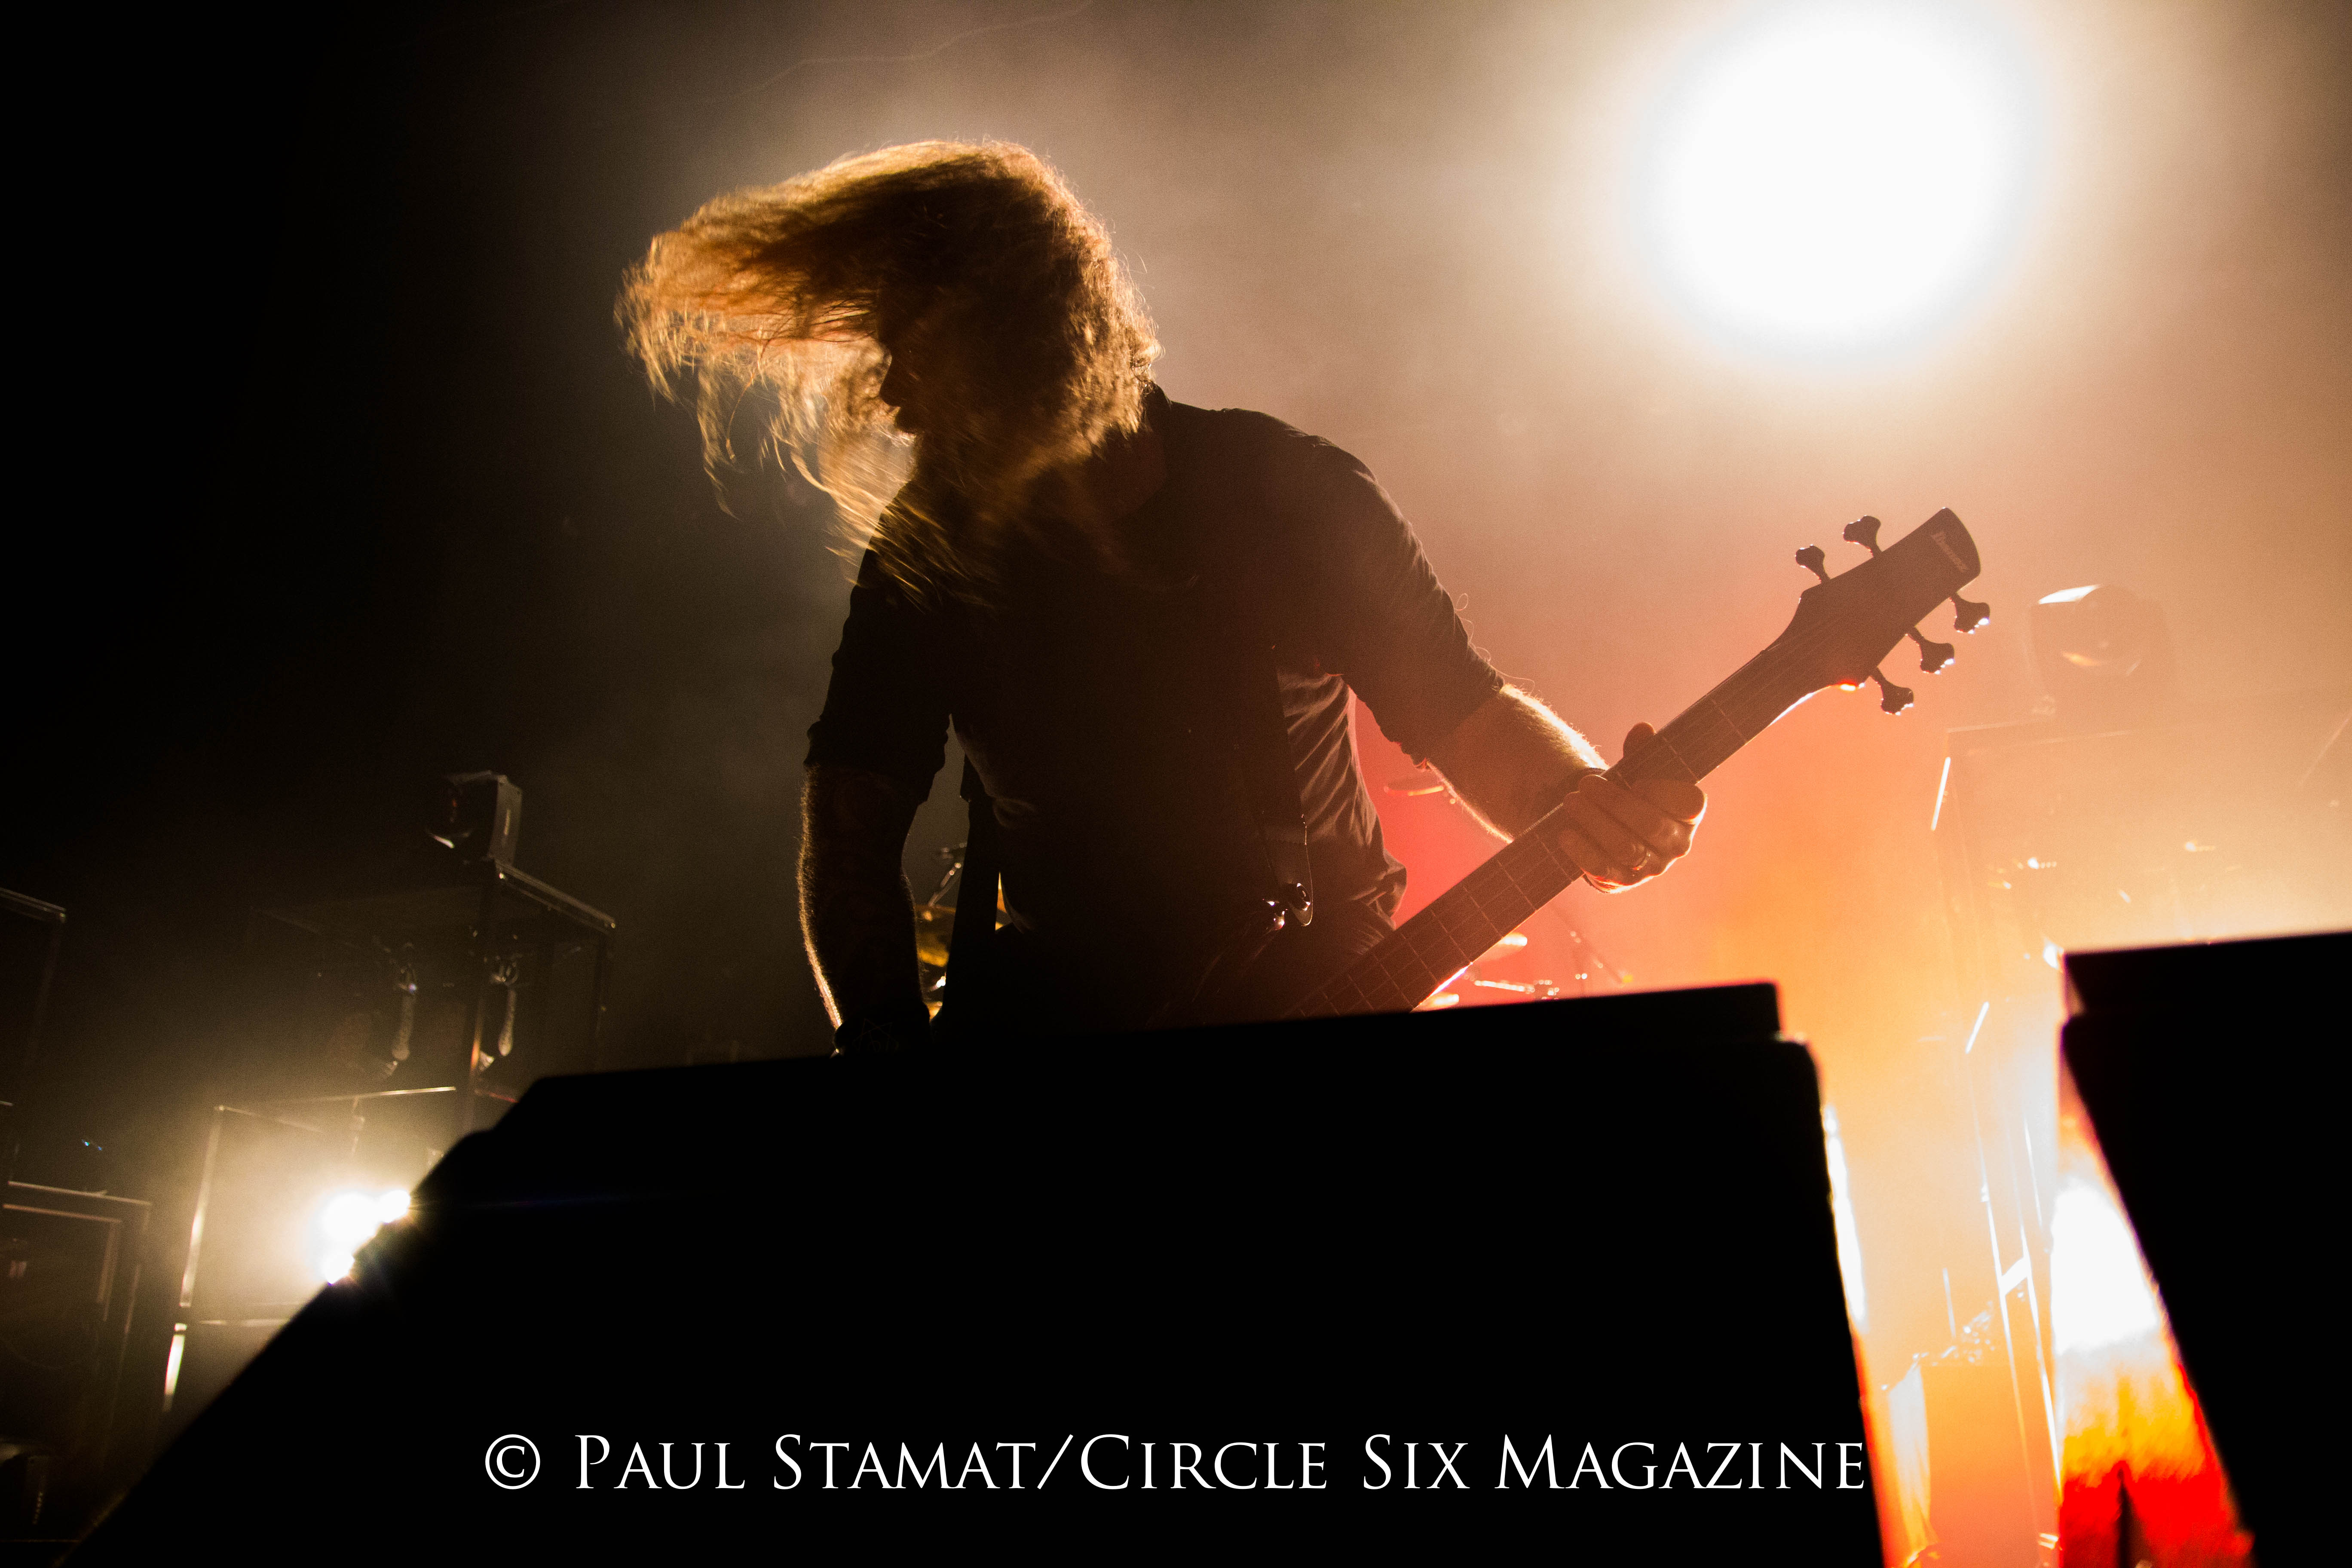 Opeth In Flames Show 2 (29 of 39)